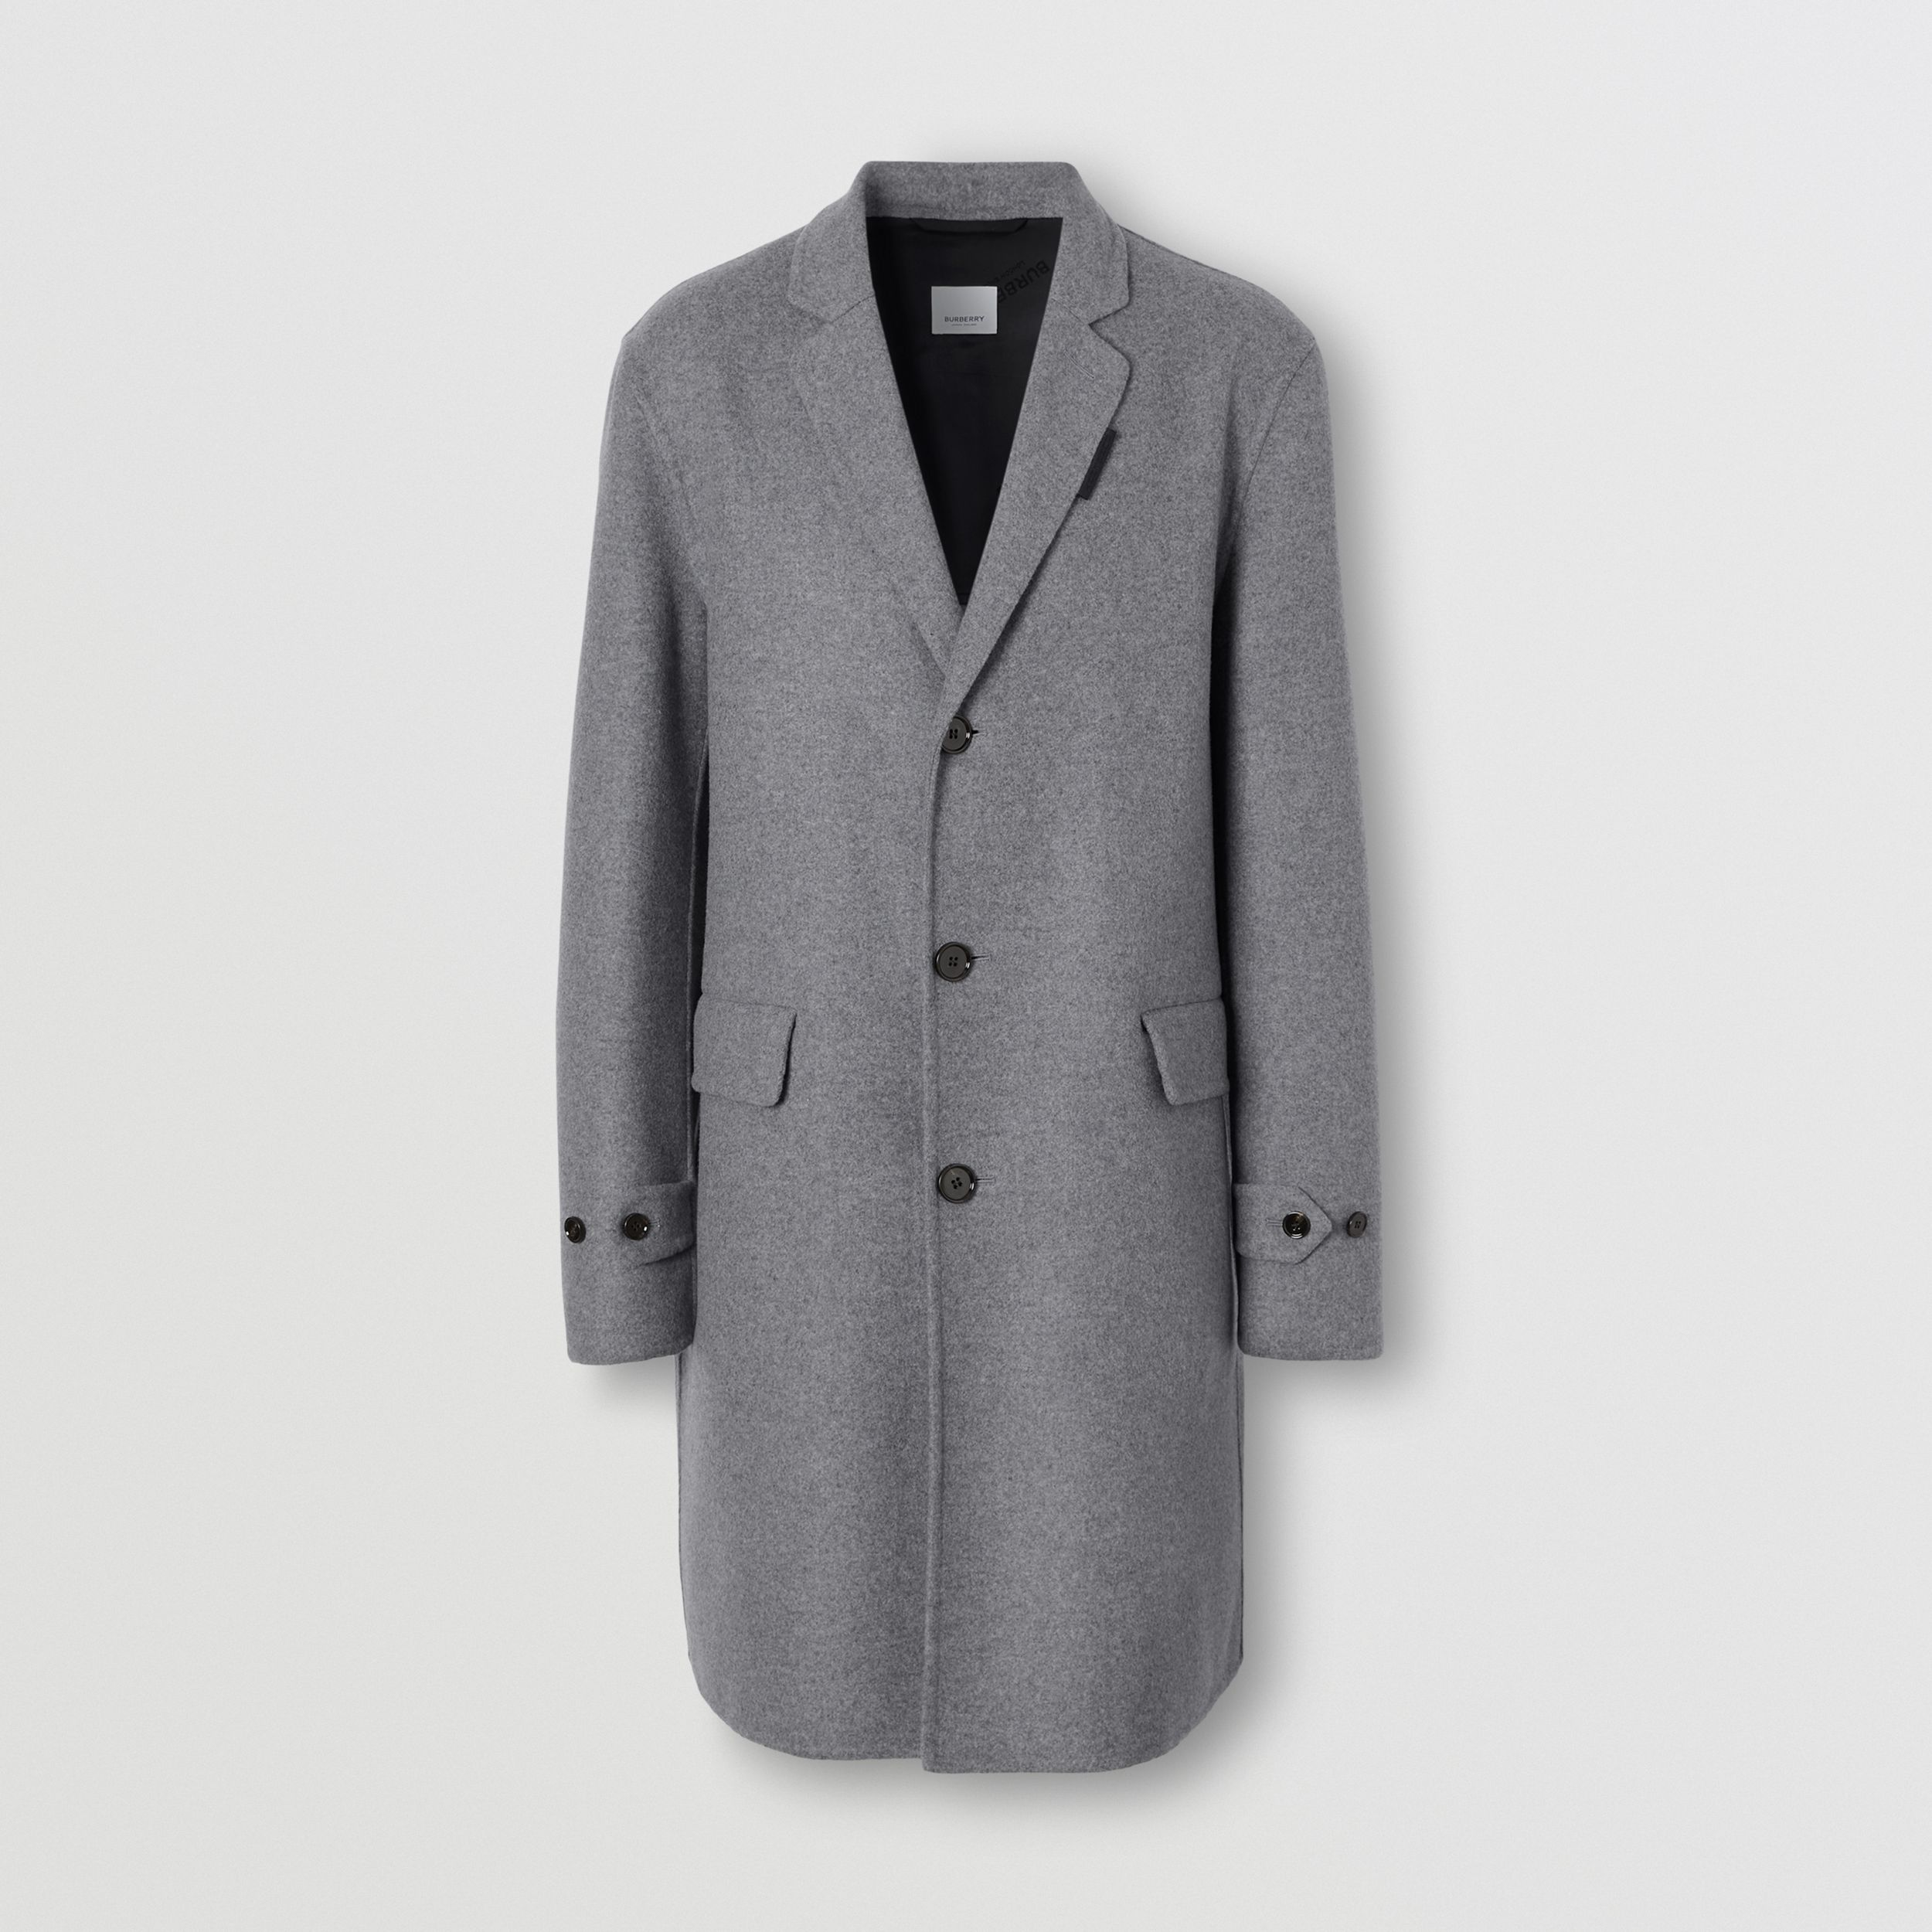 Wool Cashmere Lab Coat in Charcoal - Men | Burberry United States - 4